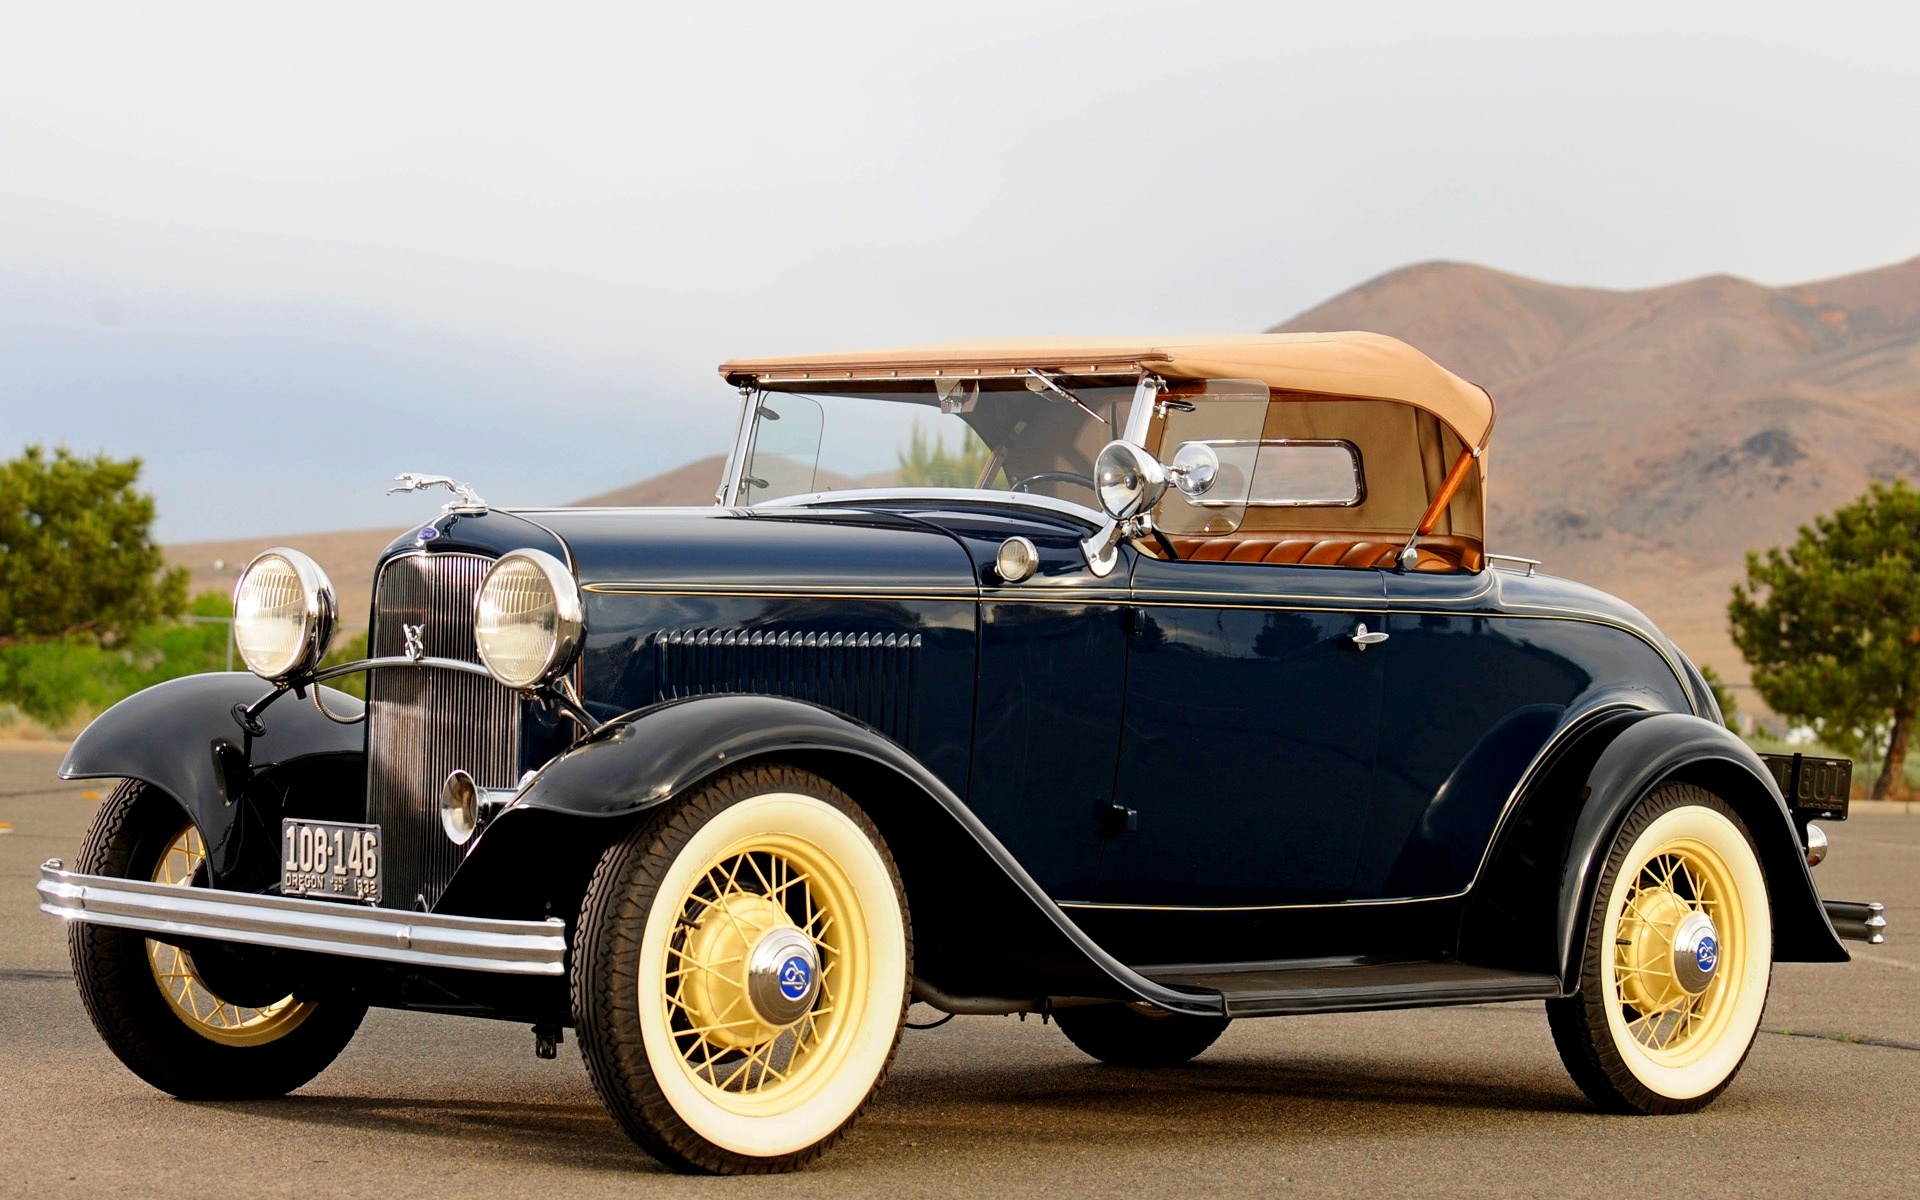 HQ 1932 Ford Roadster Wallpapers | File 498.84Kb